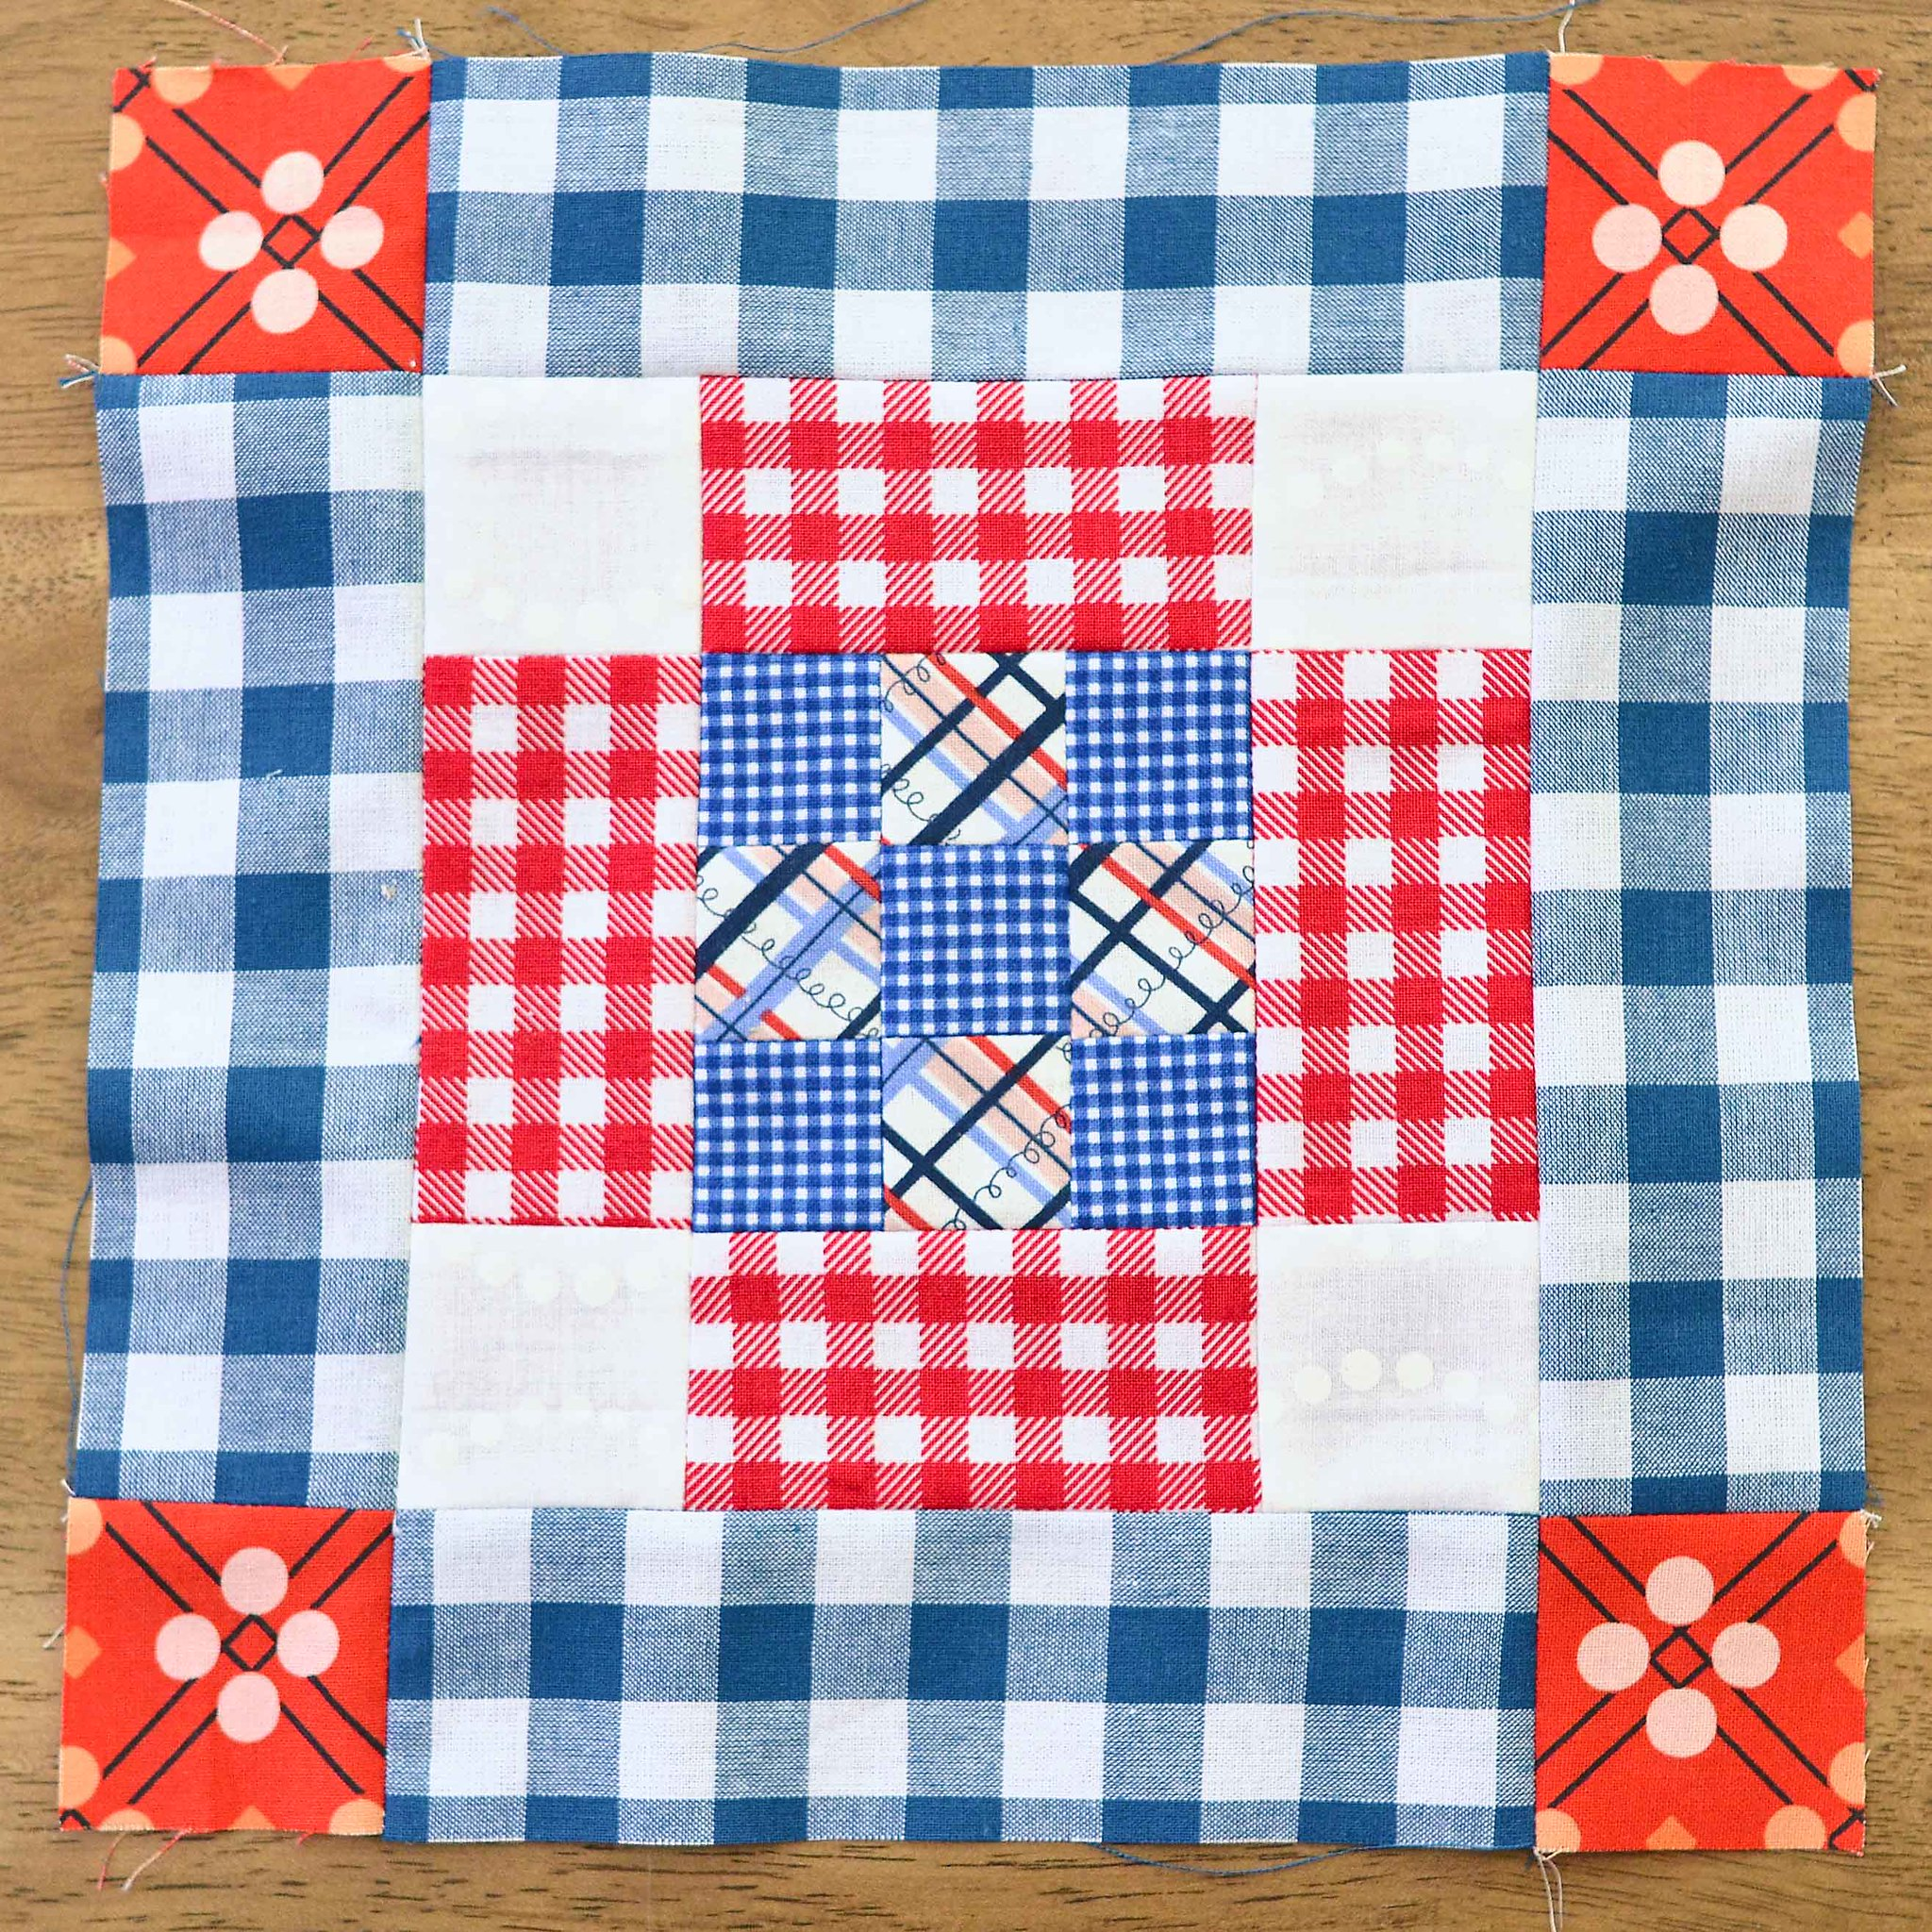 The Fussy Cut Sampler QAL Block 21